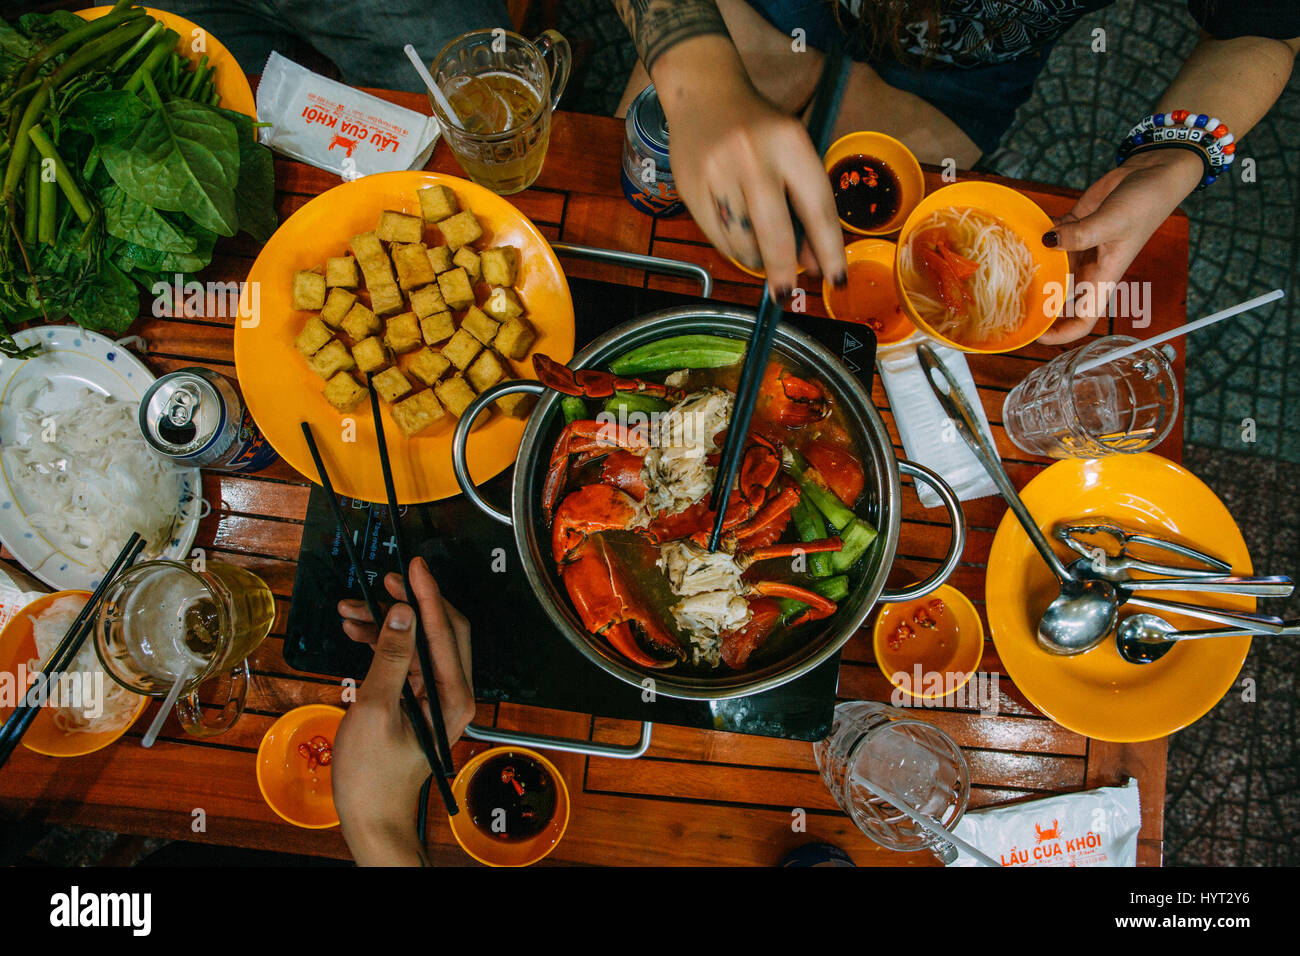 Hot Pot Dinner with Crab, Tofu, and Noodles in Saigon, Ho Chi Minh City, Vietnam - Stock Image